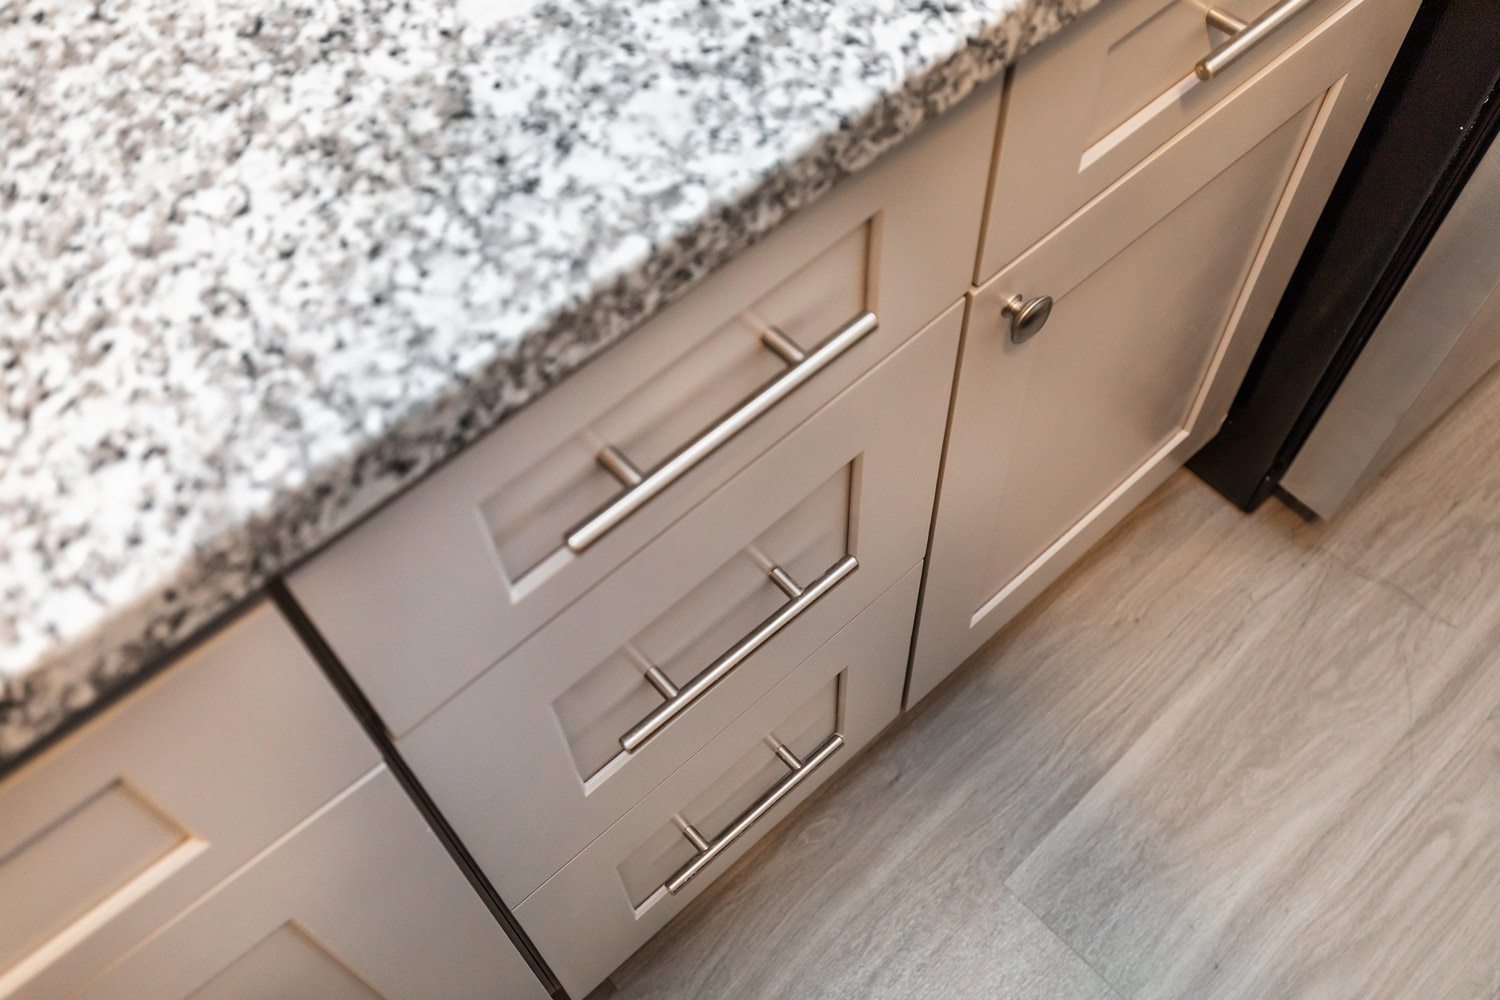 Kitchen Cabinet Drawer at The Five Points at Texas Apartments in Texas City, Texas